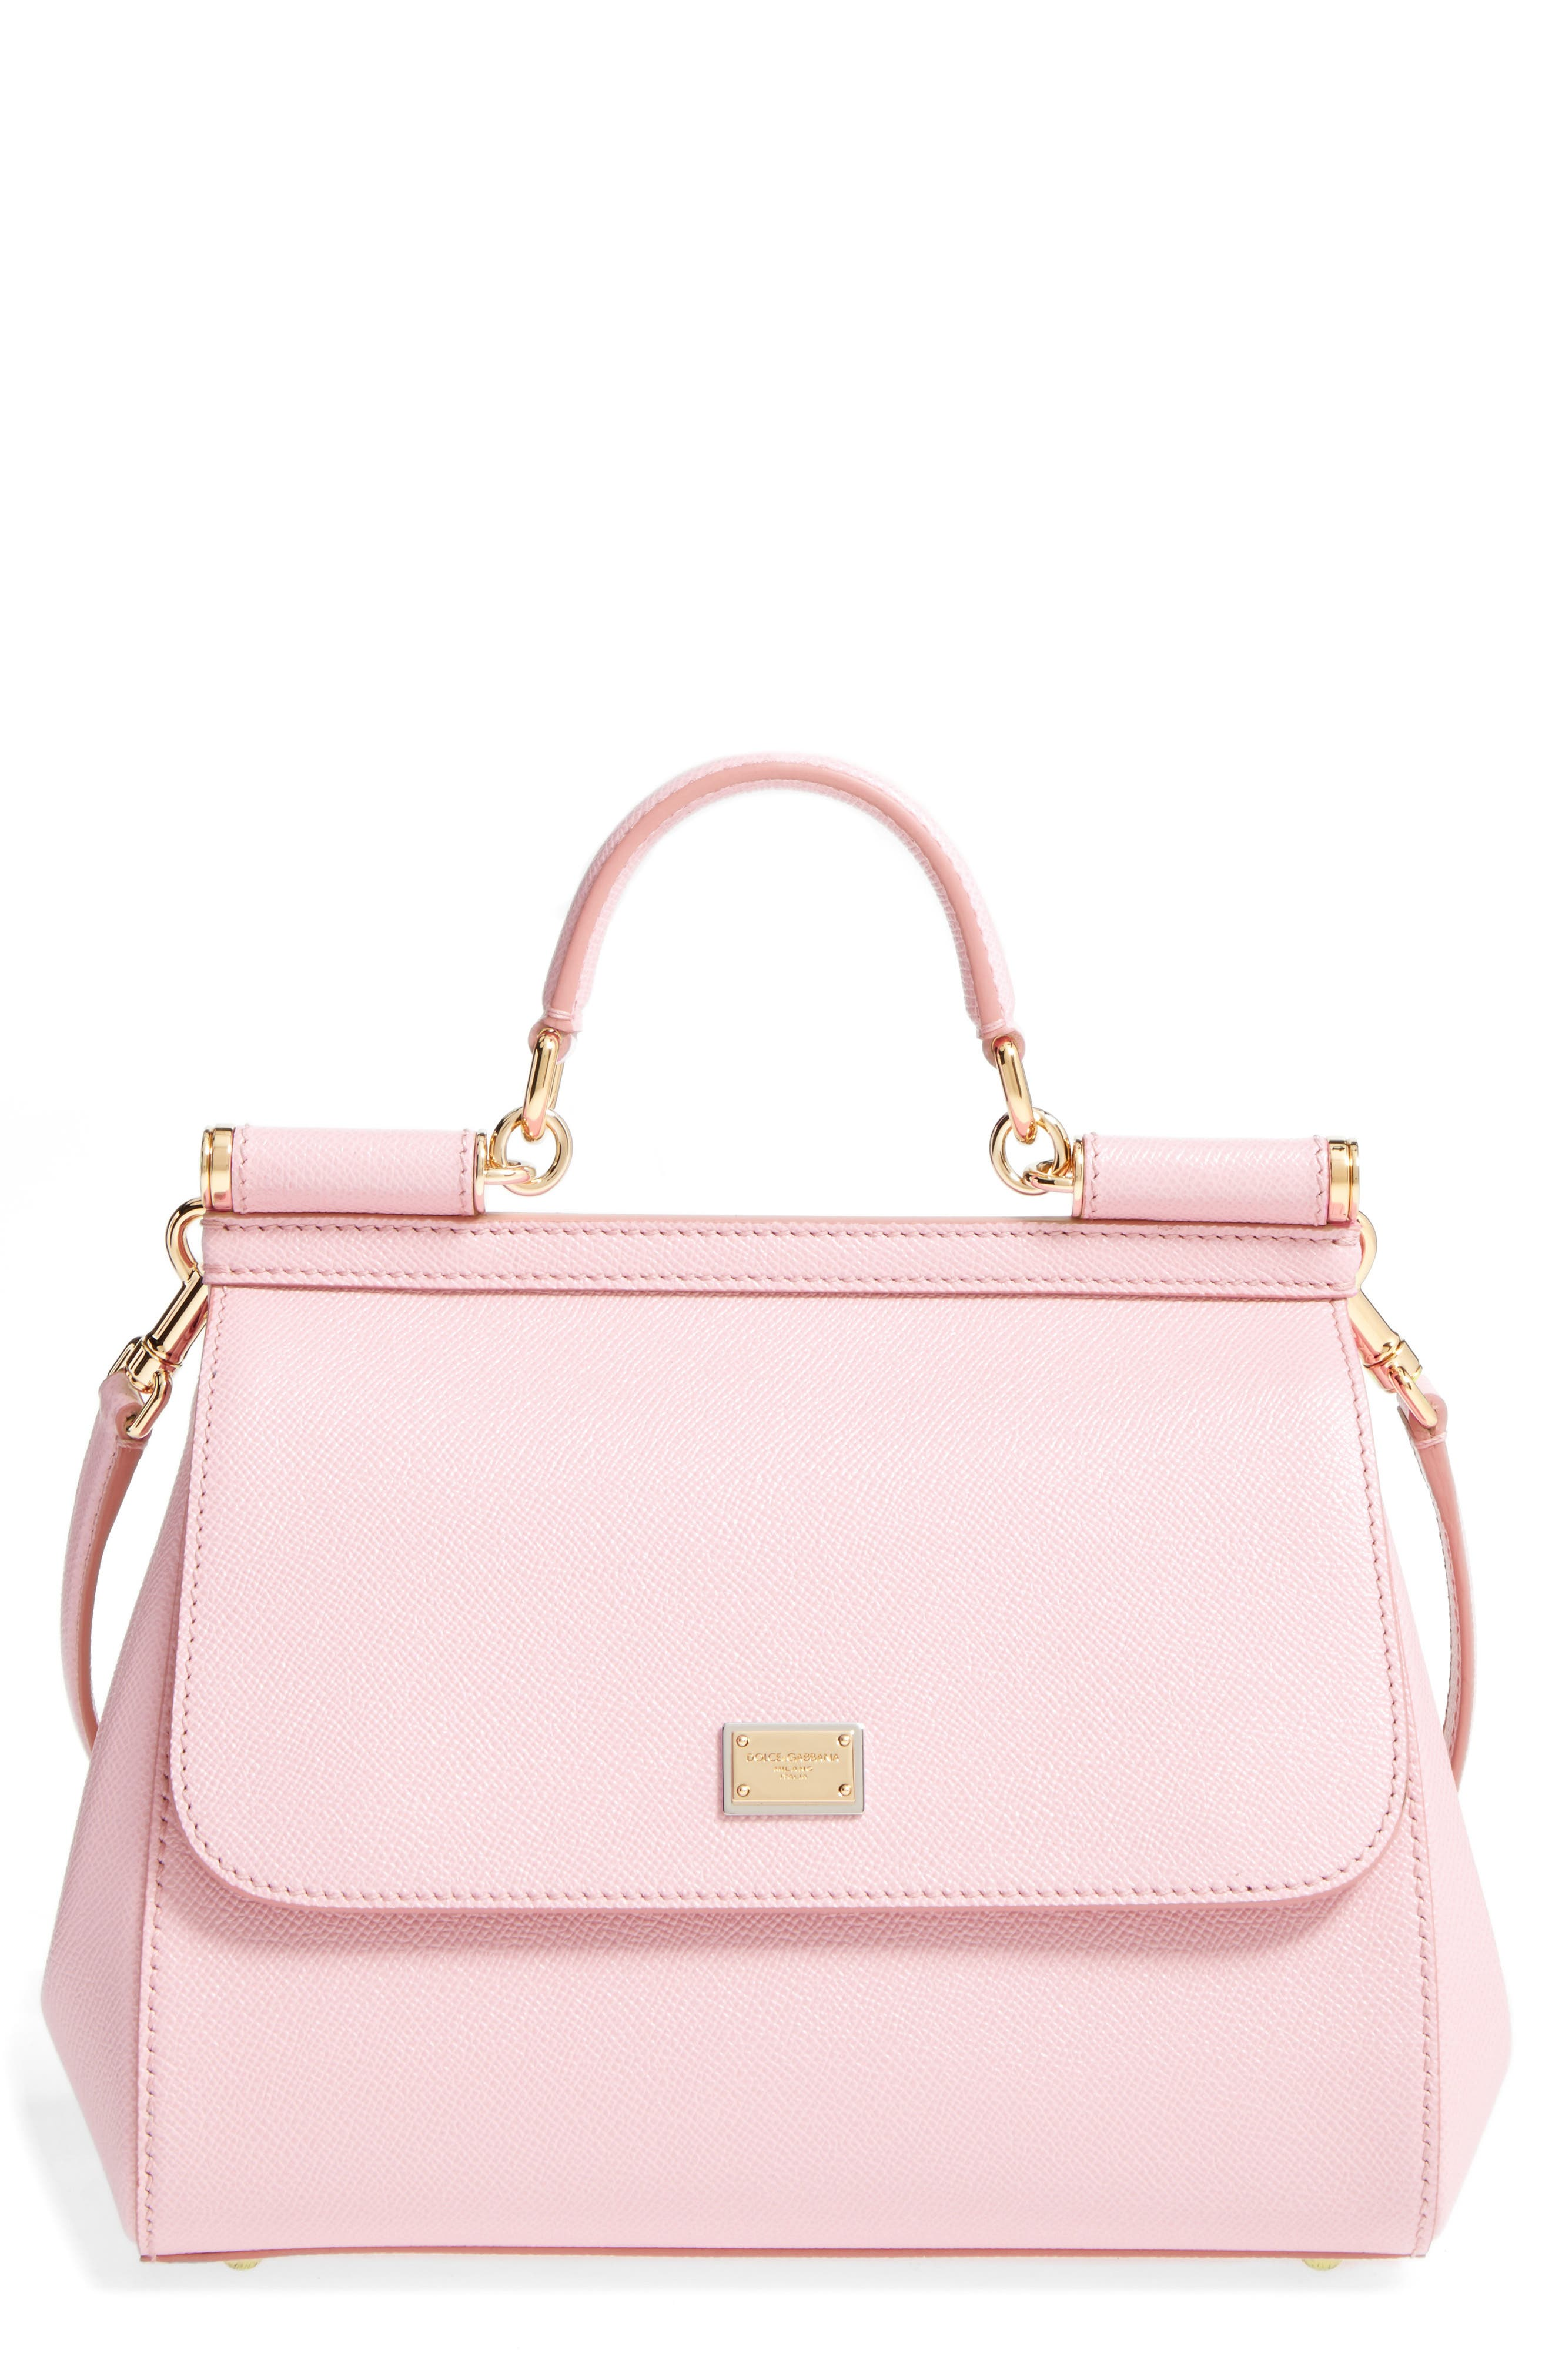 'Small Miss Sicily' Leather Satchel,                             Main thumbnail 1, color,                             ROSA CARNE DUO